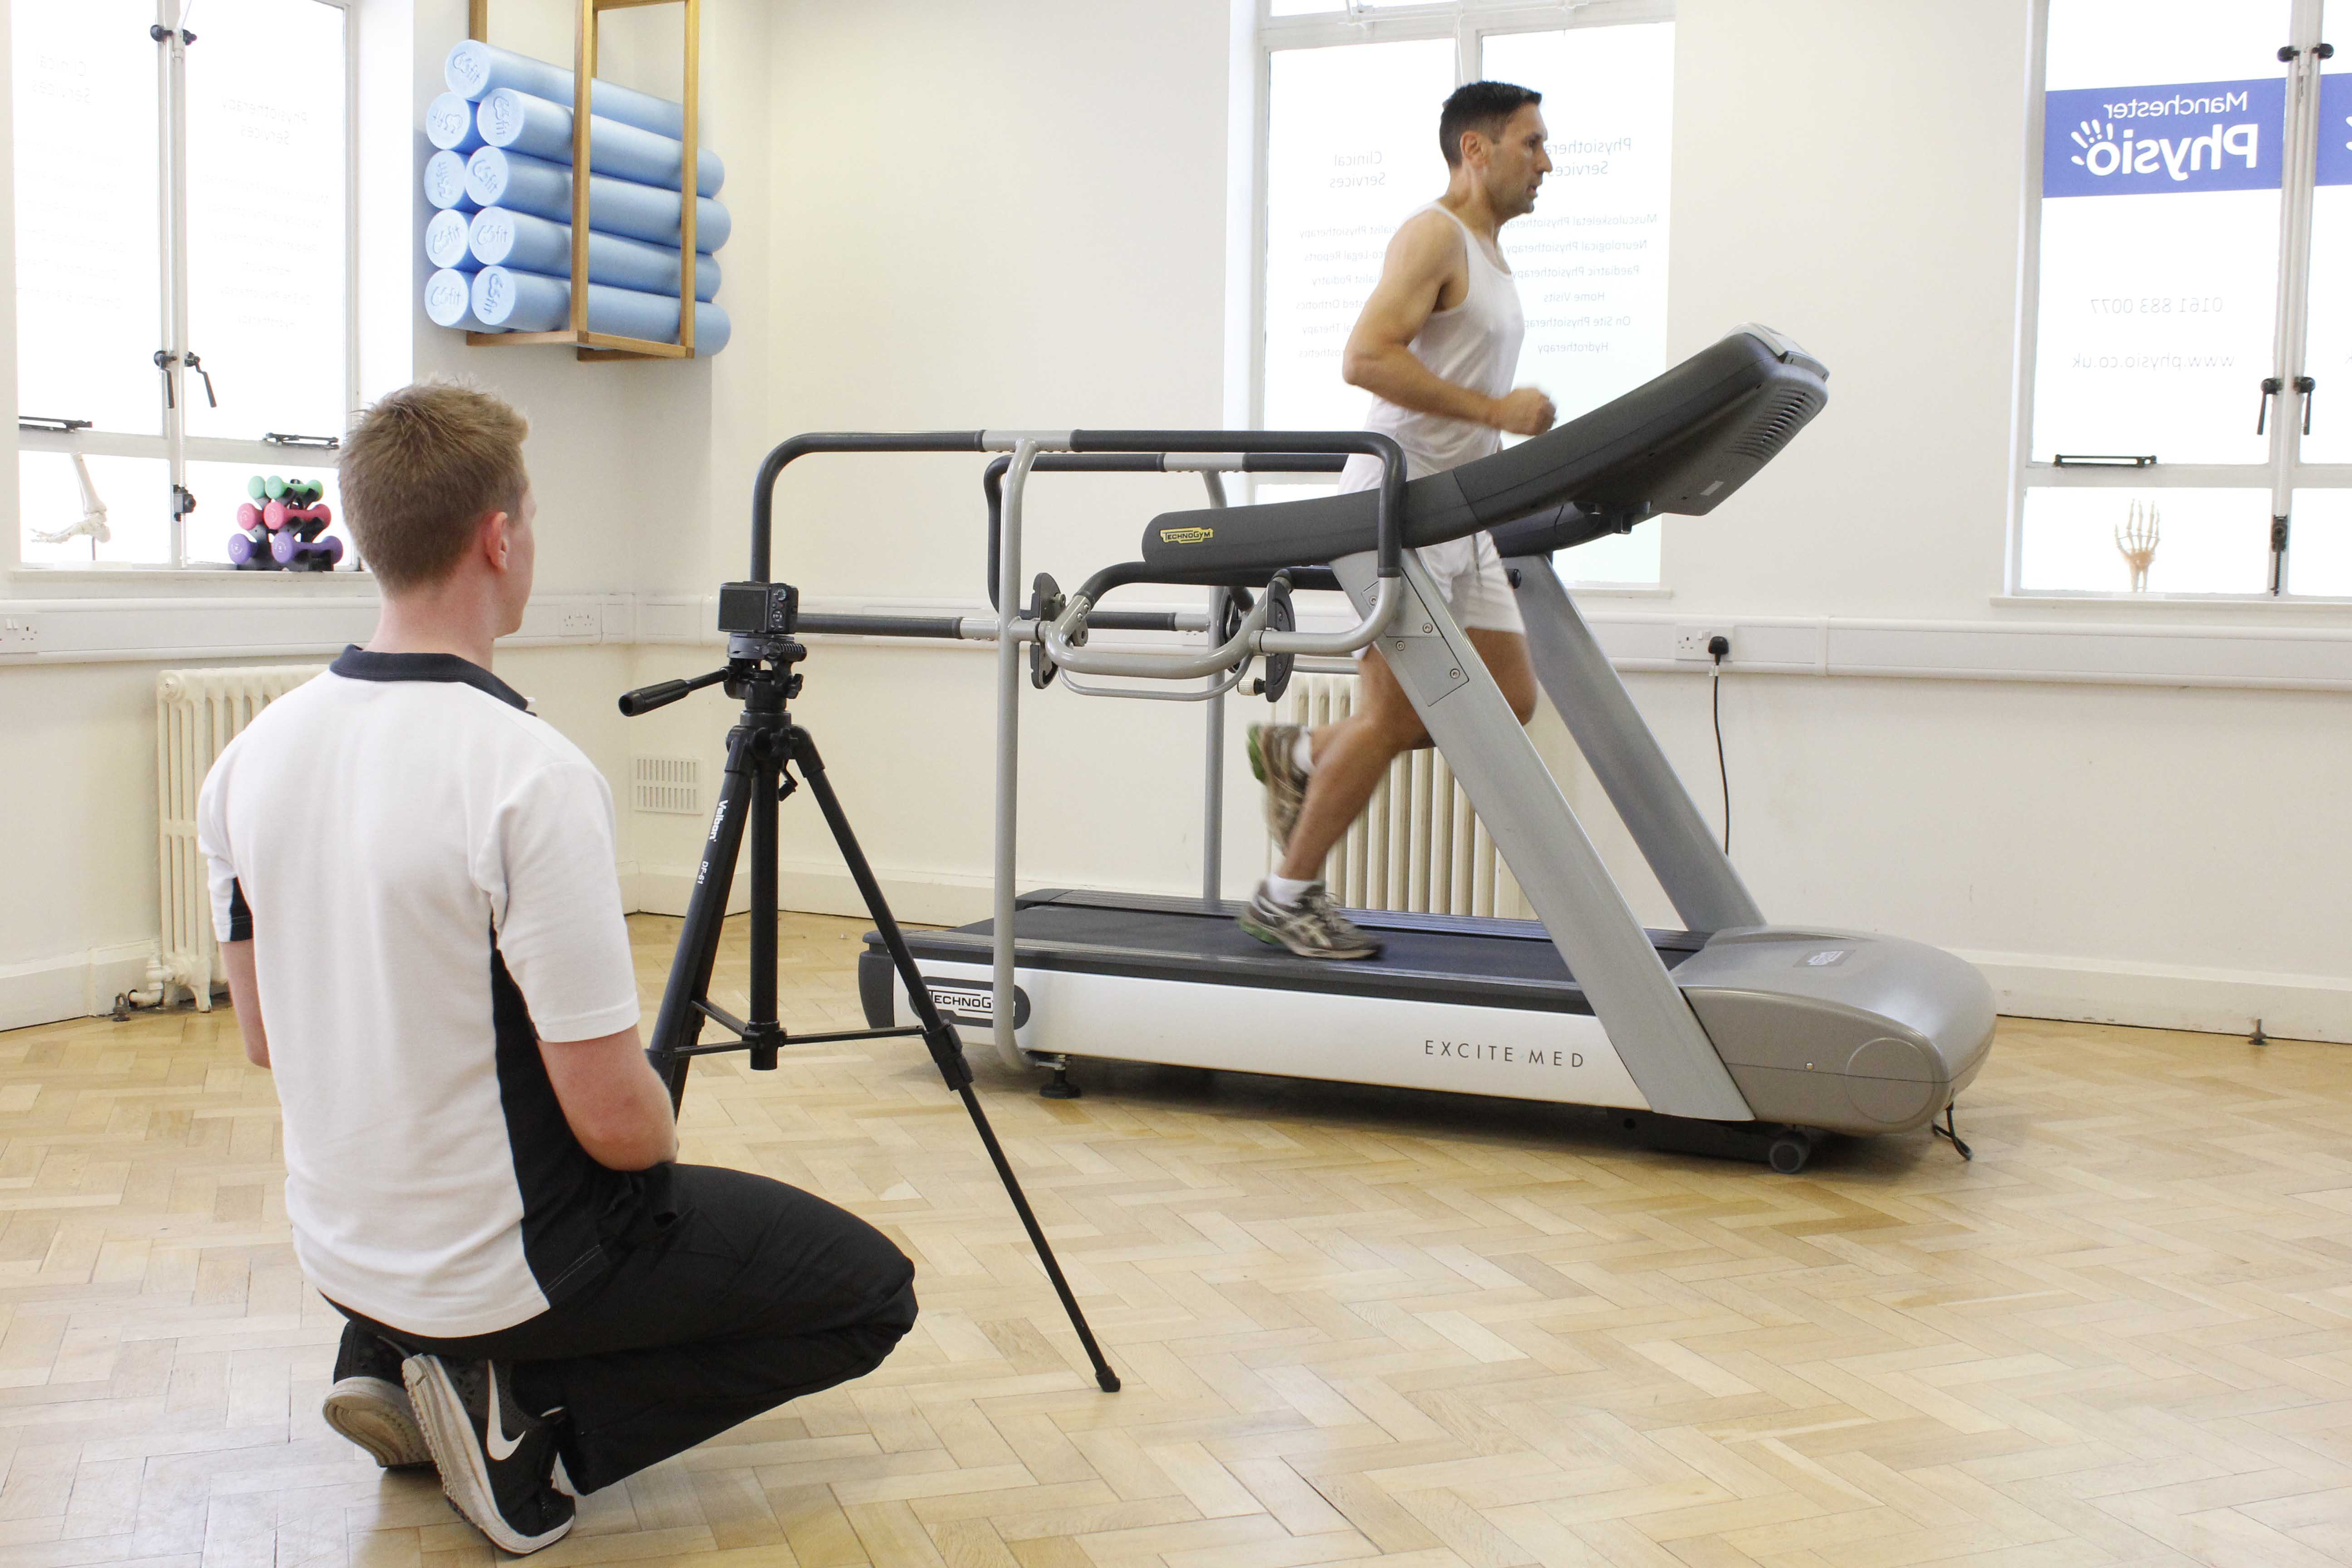 Physiotherapist performing biomechanical assessments to get the most out of your rehabilitation exercises